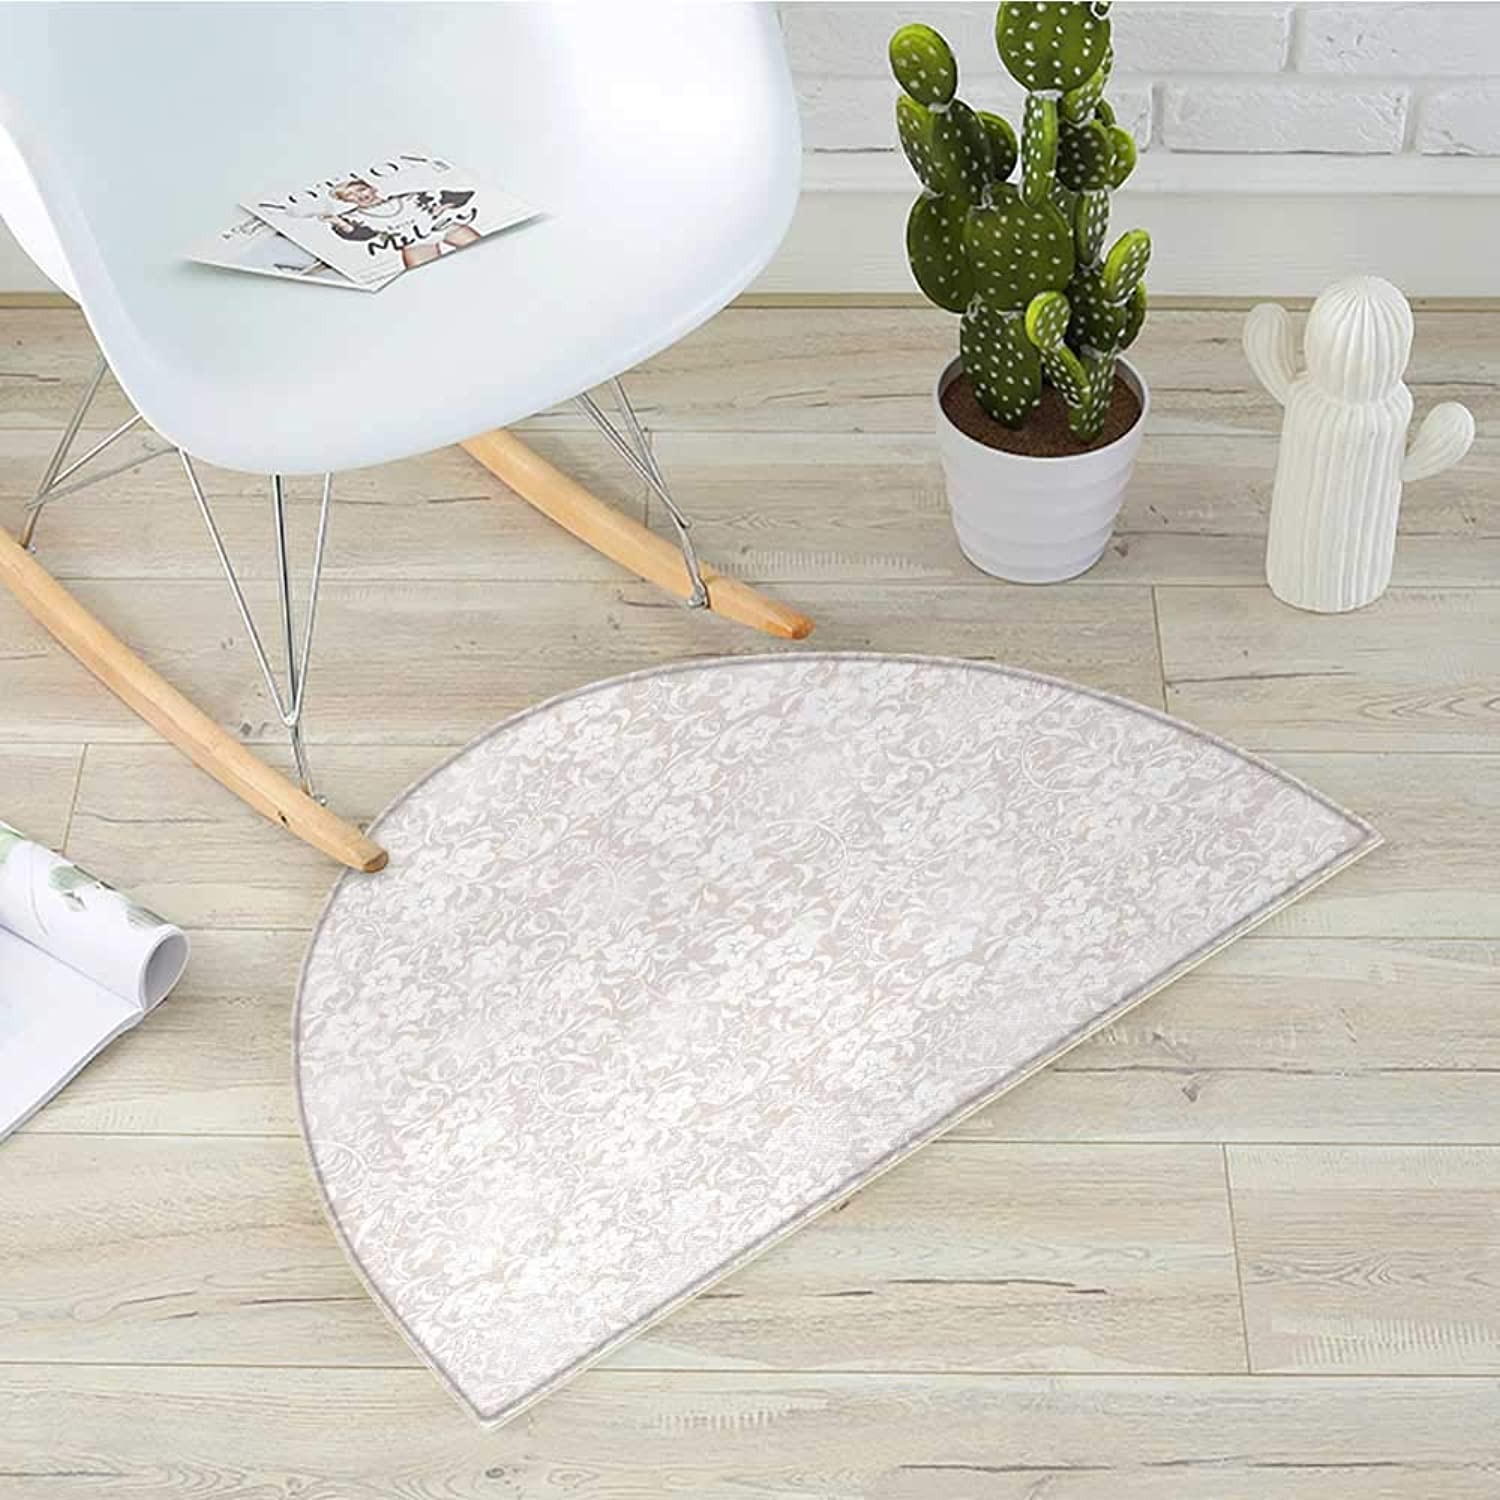 Ivory Half Round Door mats Floral Pattern Spring Season Blossoms Branches Leaf Beauty Field Ornamental Design Bathroom Mat H 43.3  xD 64.9  Beige White